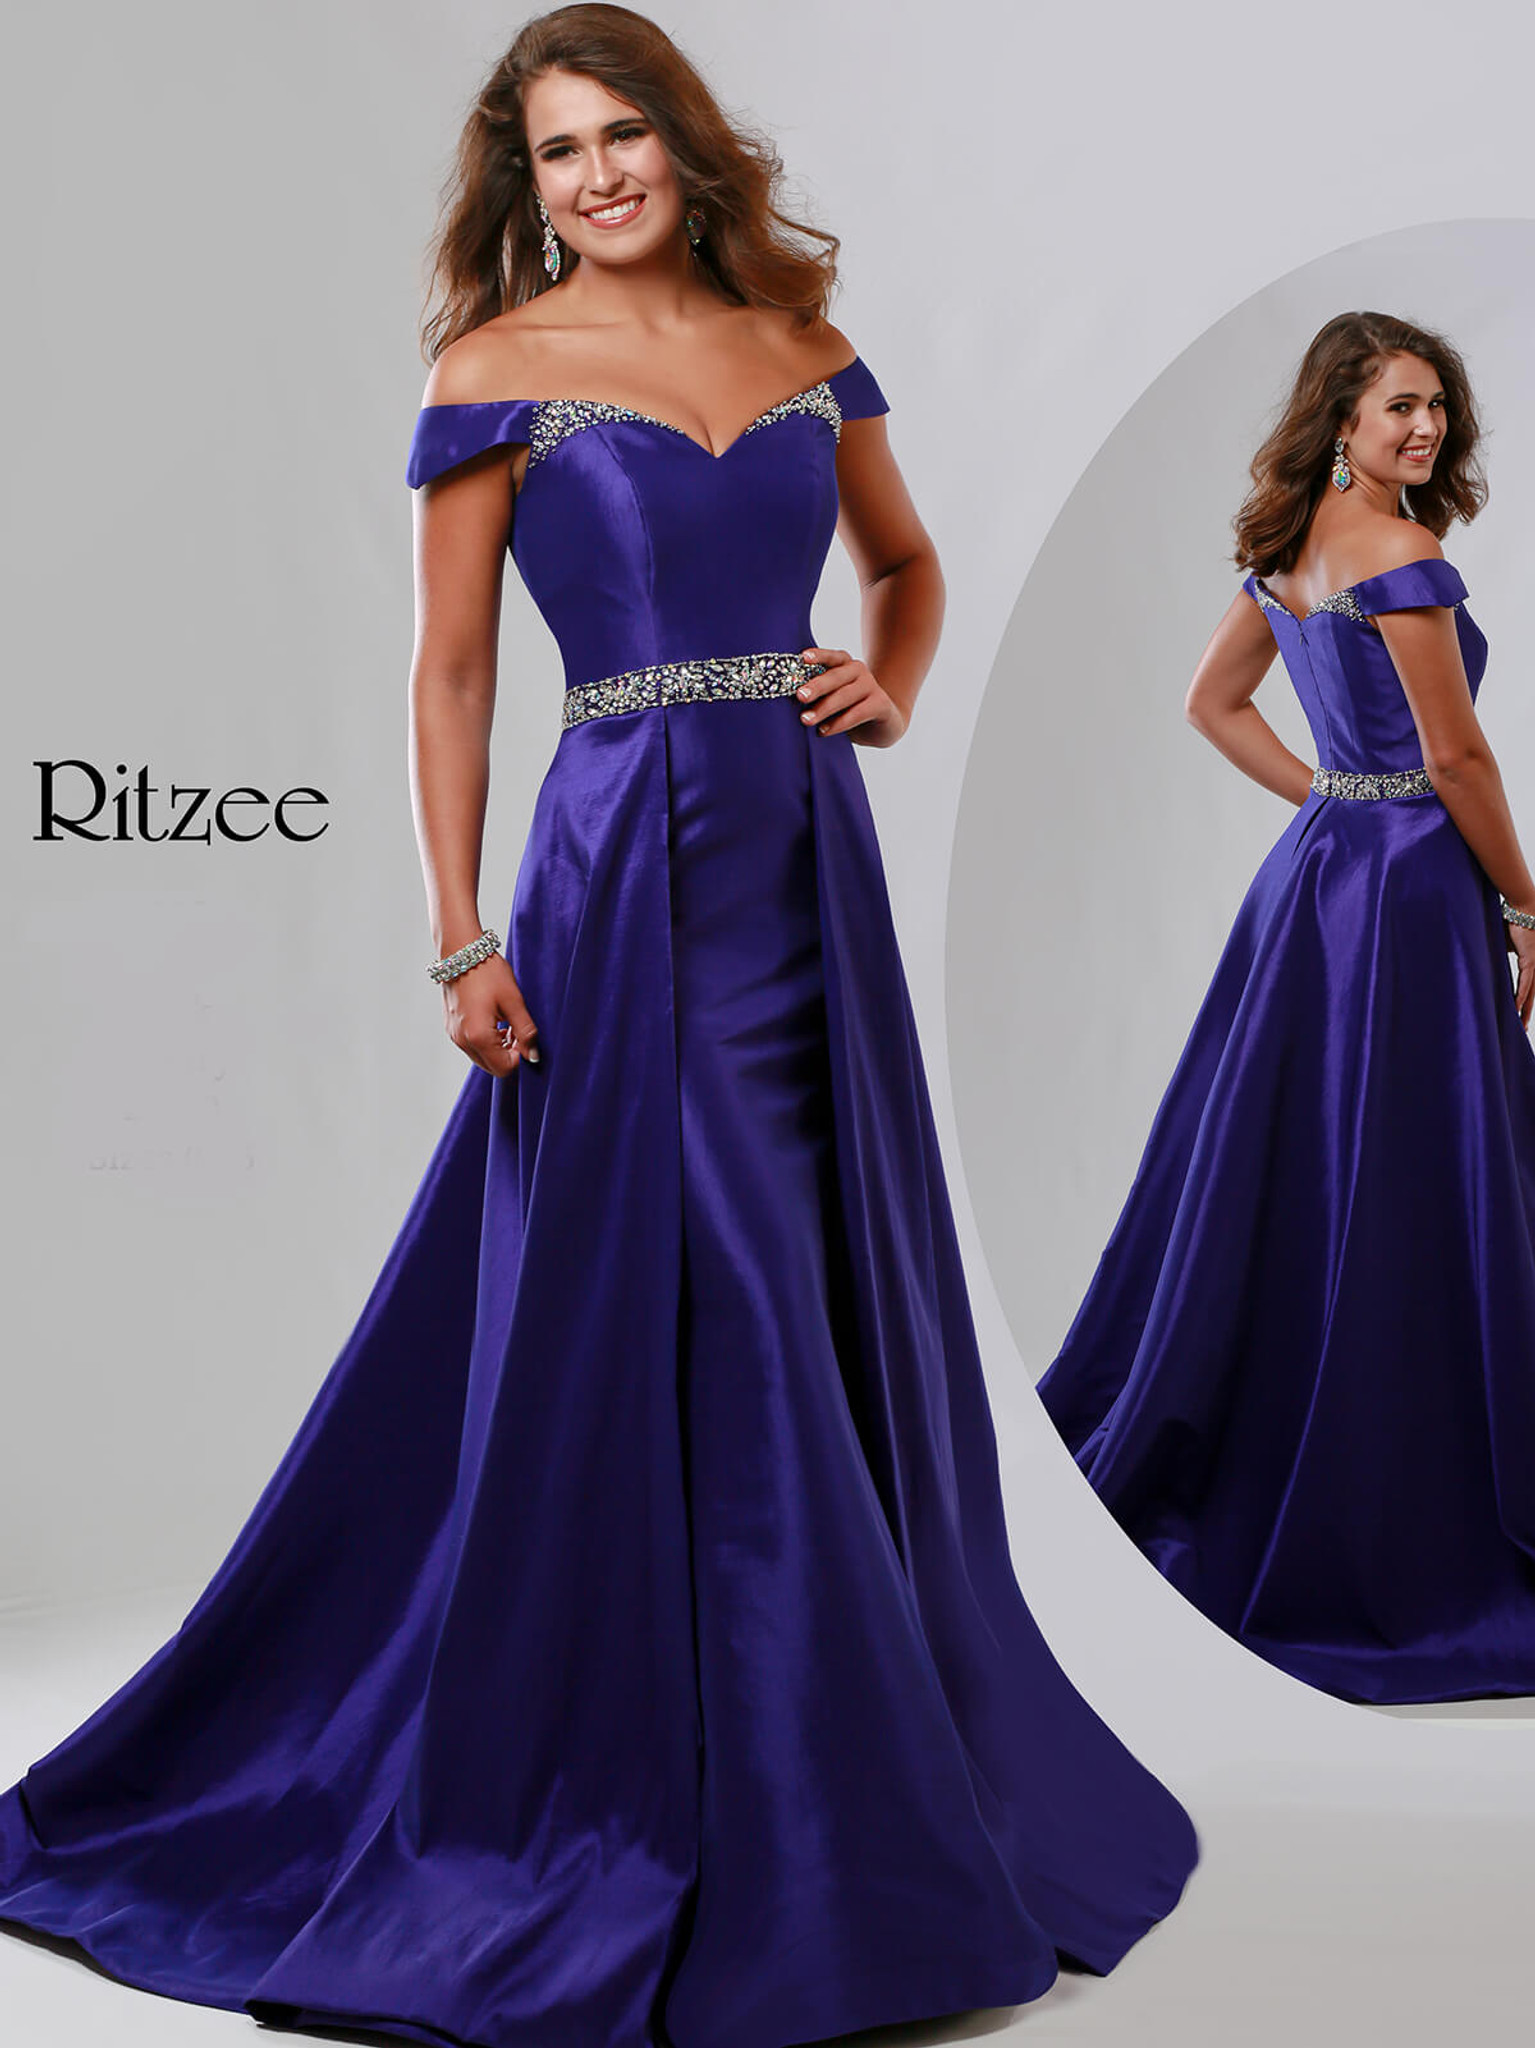 A-line Ritzee Originals 3519 Pageant Dress PageantDesigns